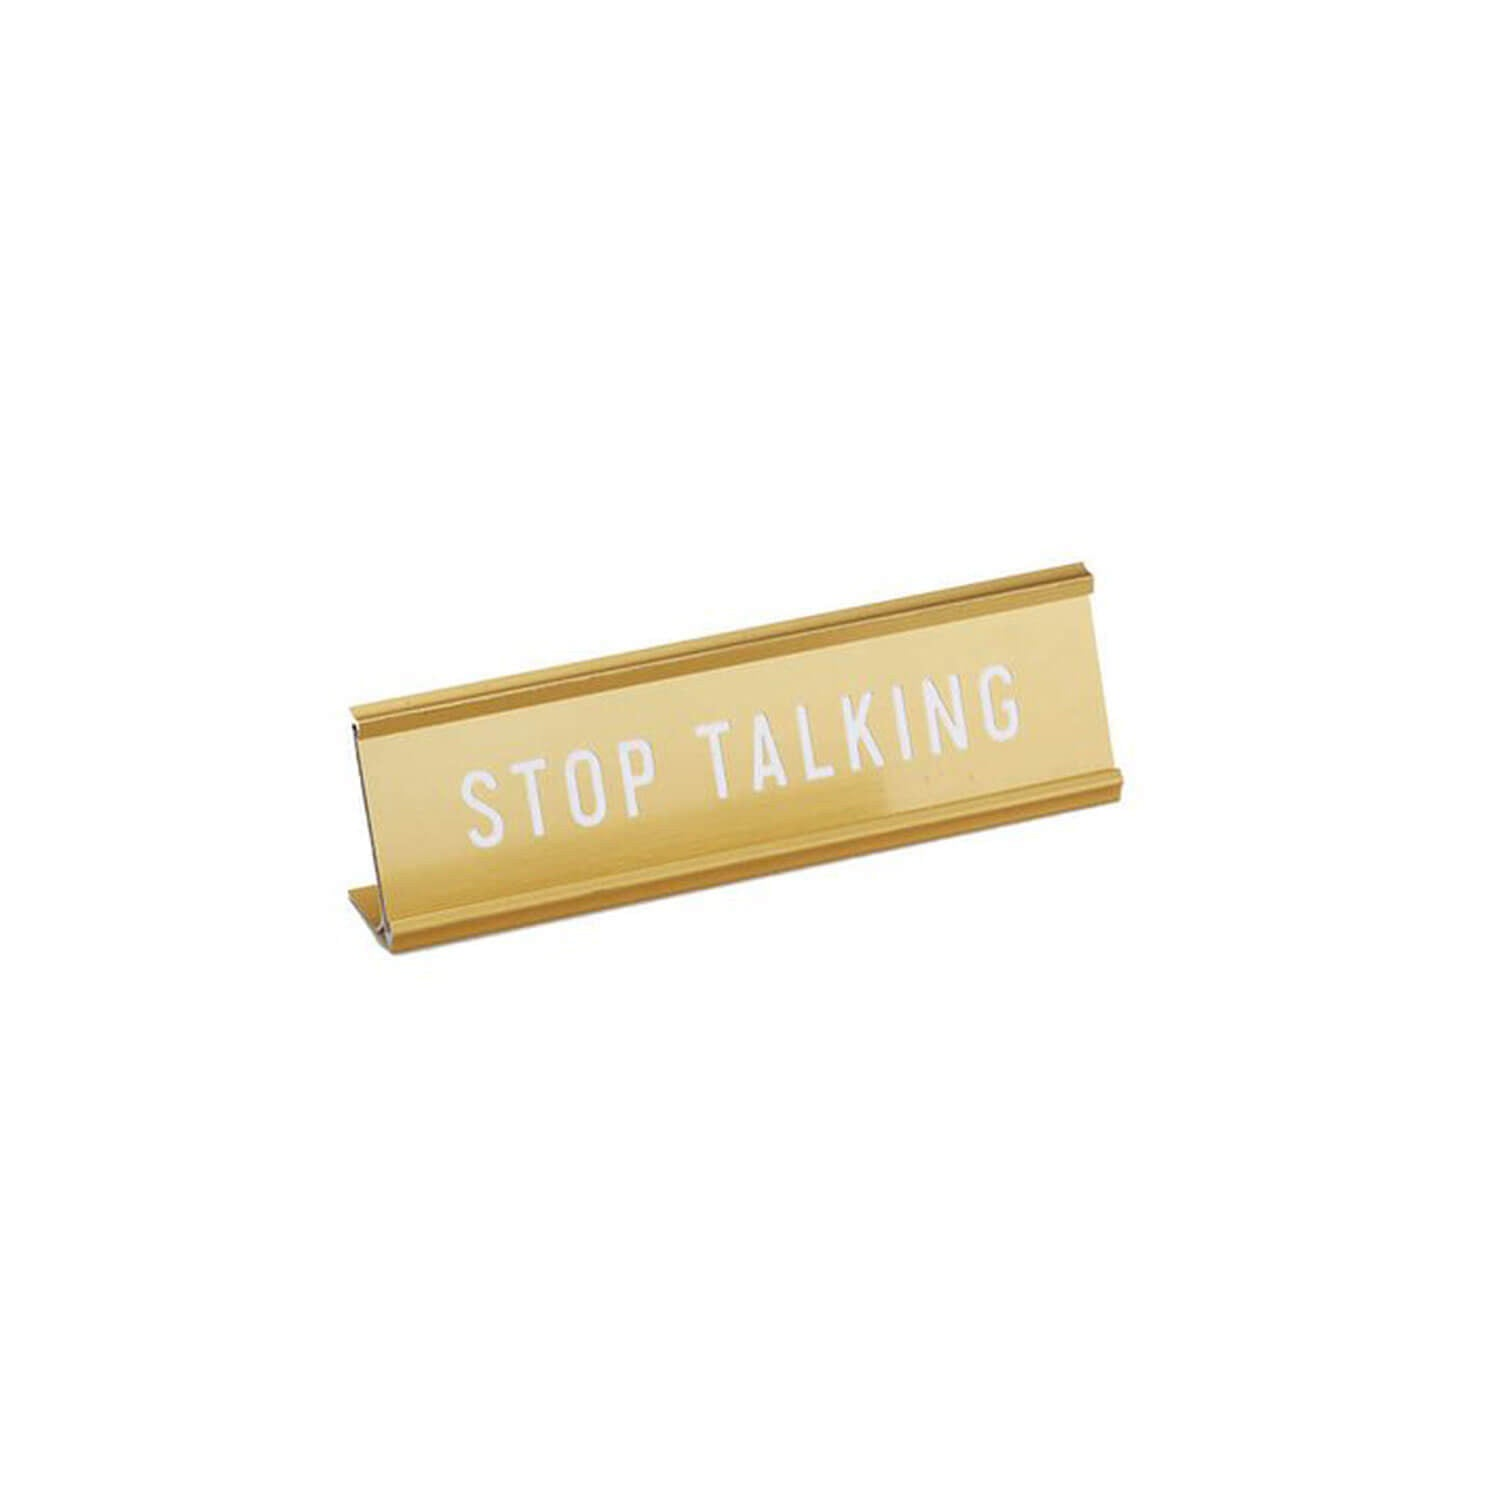 Gold Desk Name Plate - STOP TALKING